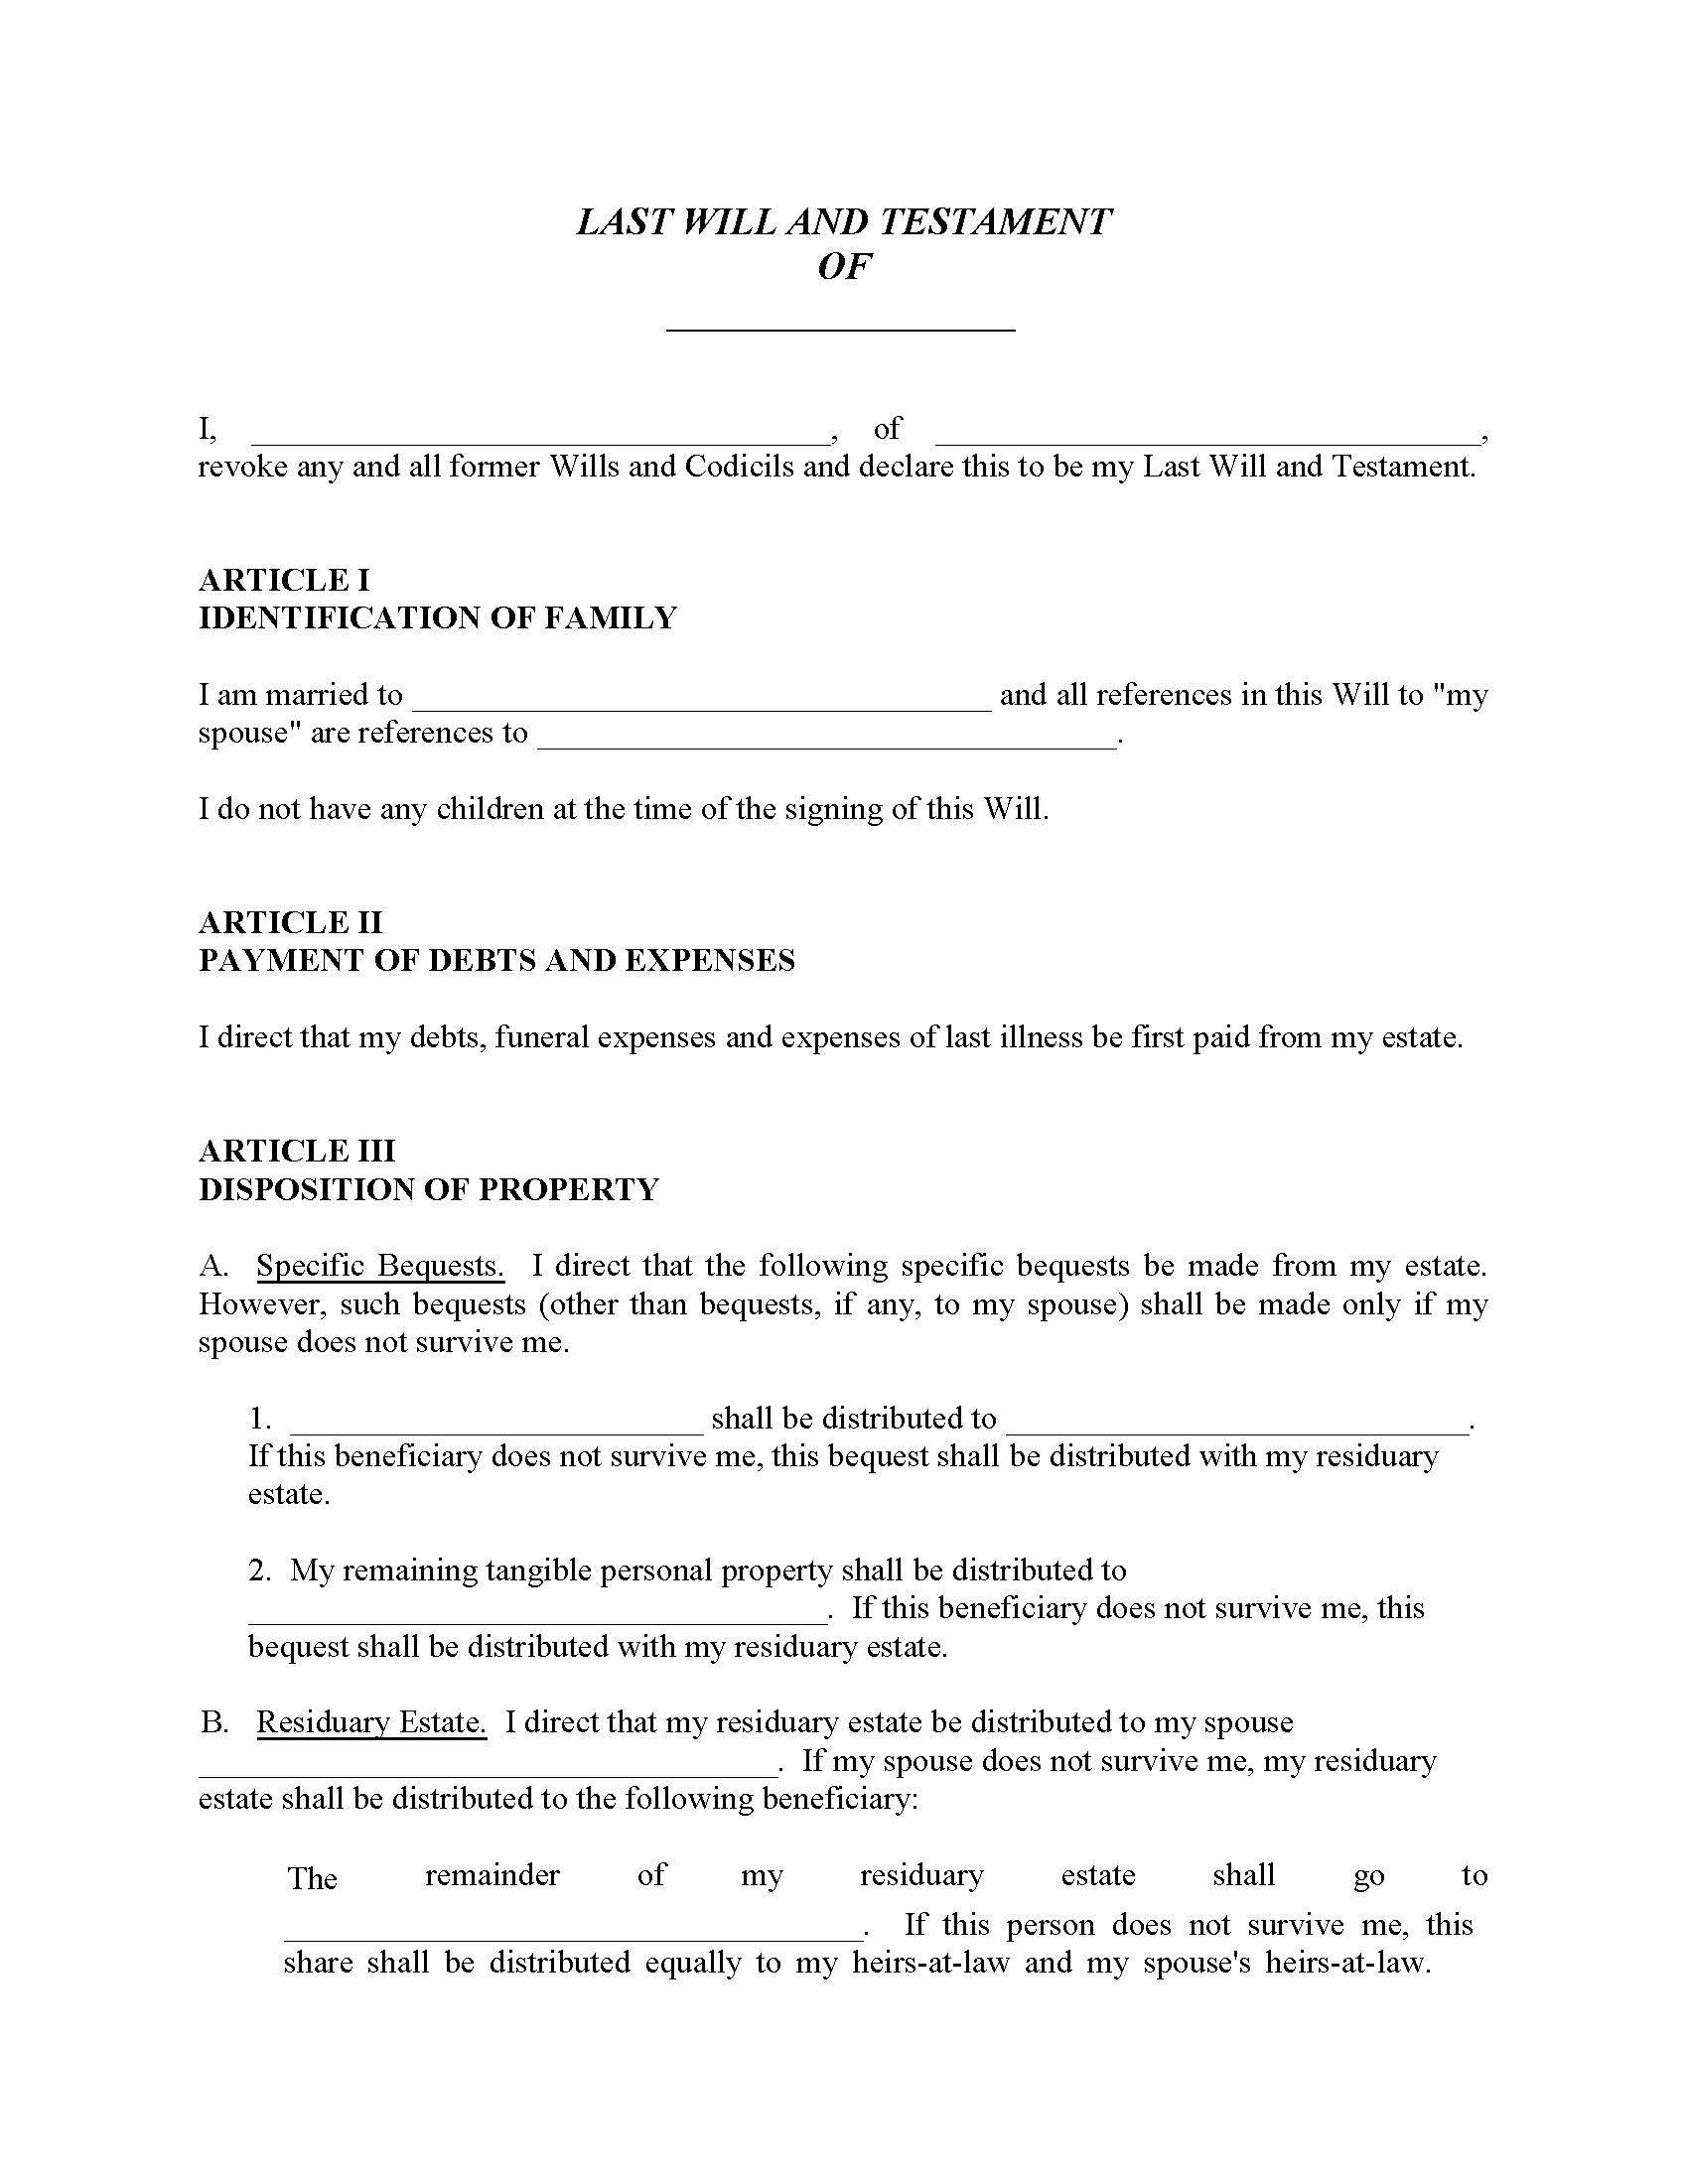 Idaho Will For Married With No Children Fillable PDF Form